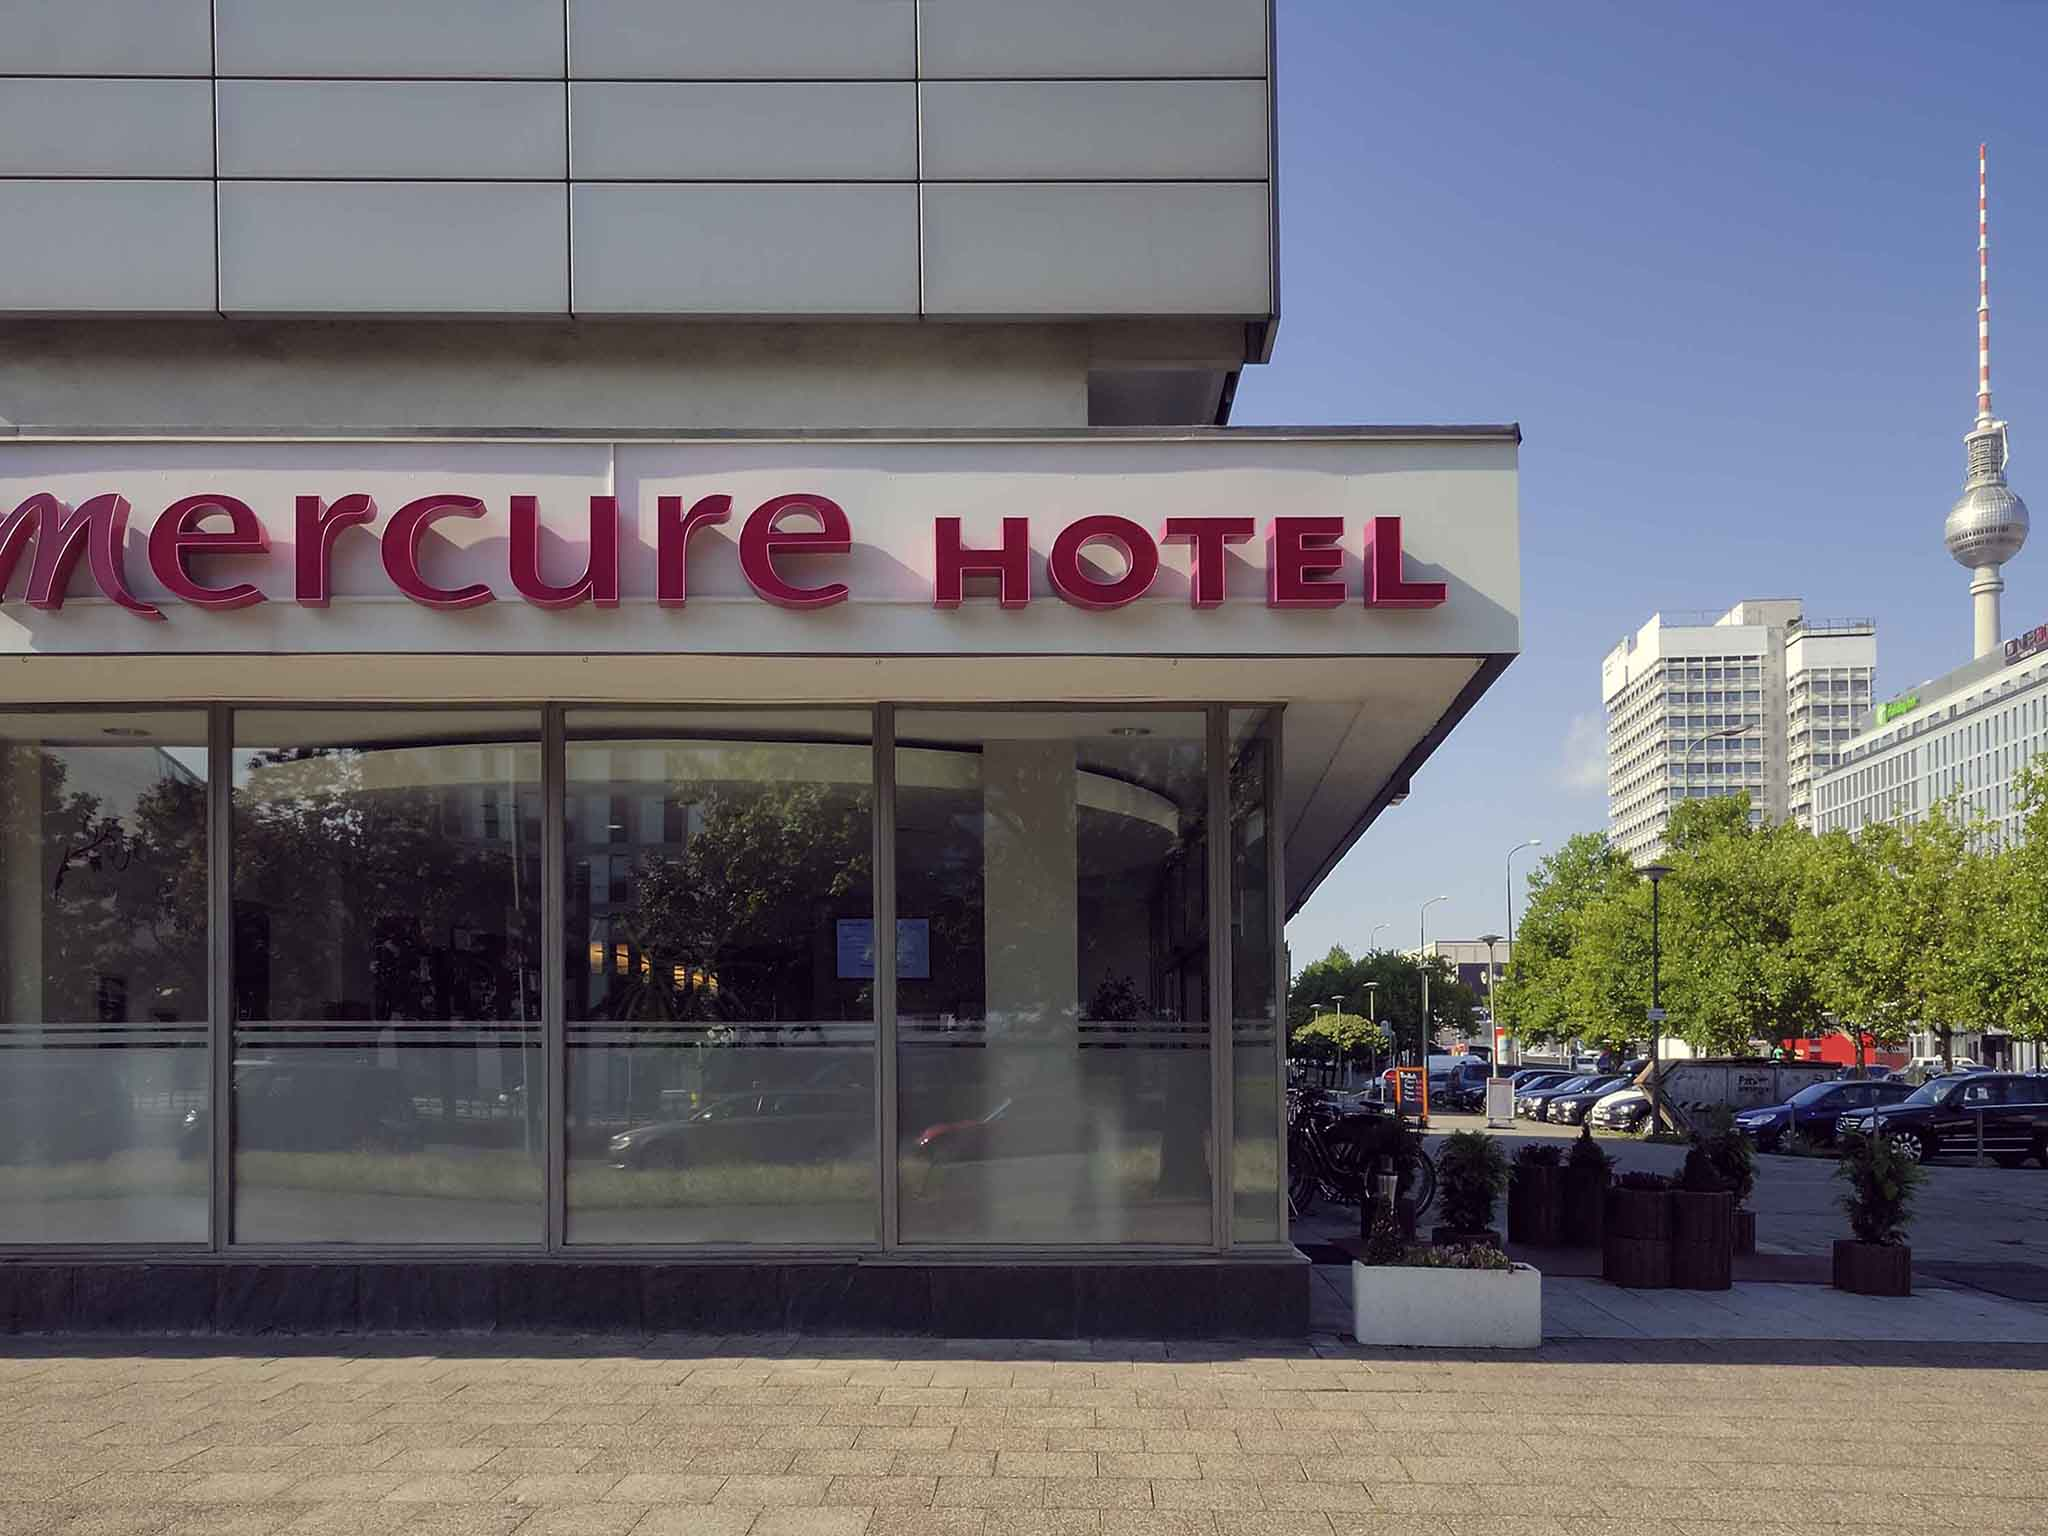 Mercure Hotel Berlin am Alexanderplatz. Book now! Wifi!